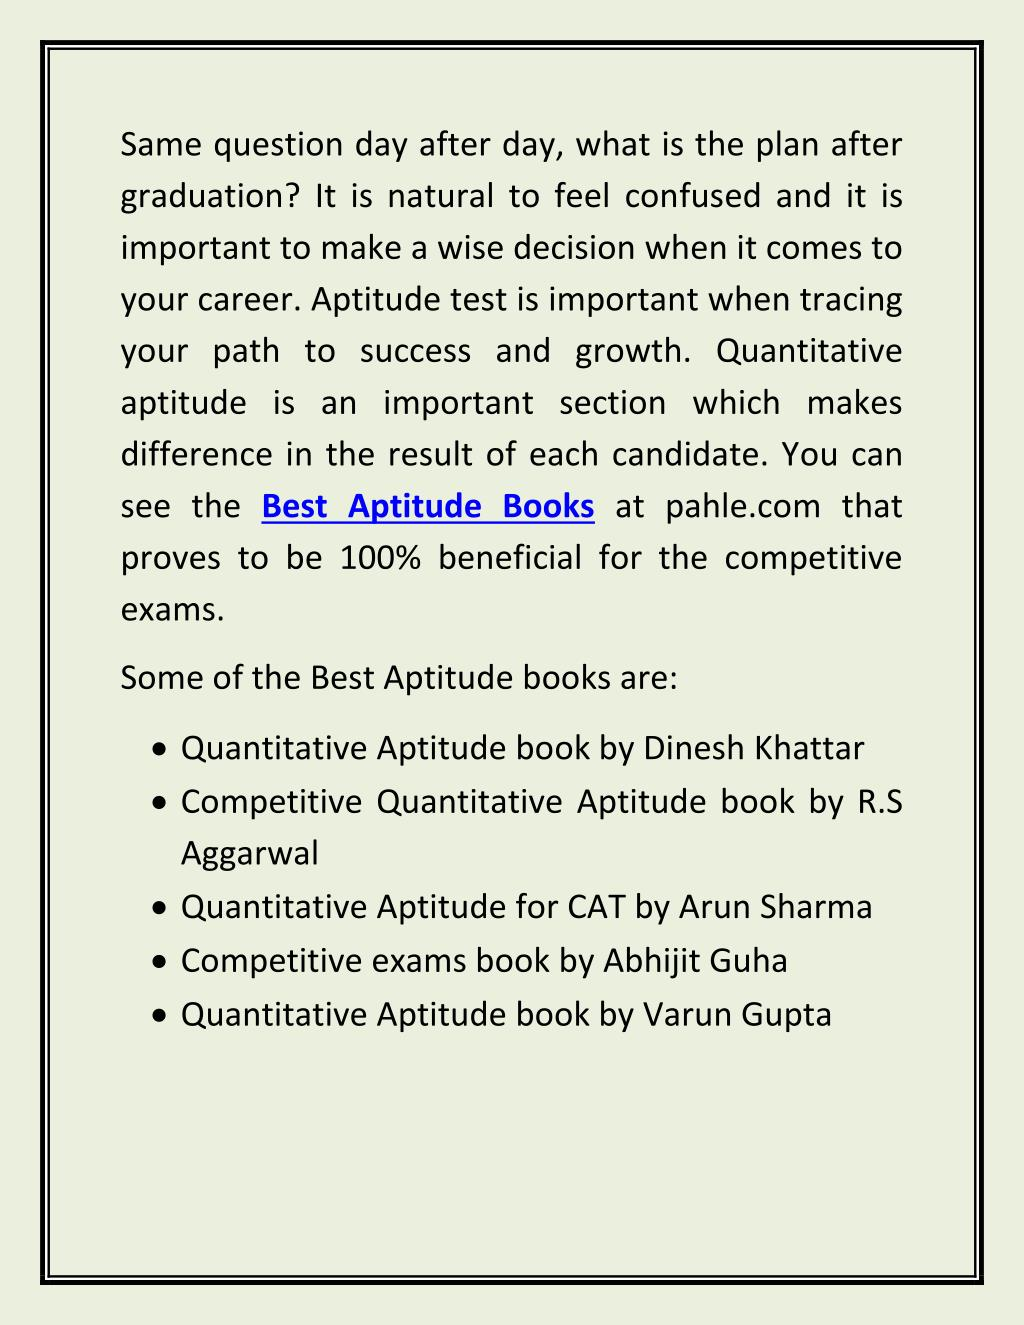 PPT - Delhi University Question Papers and best Aptitude books at